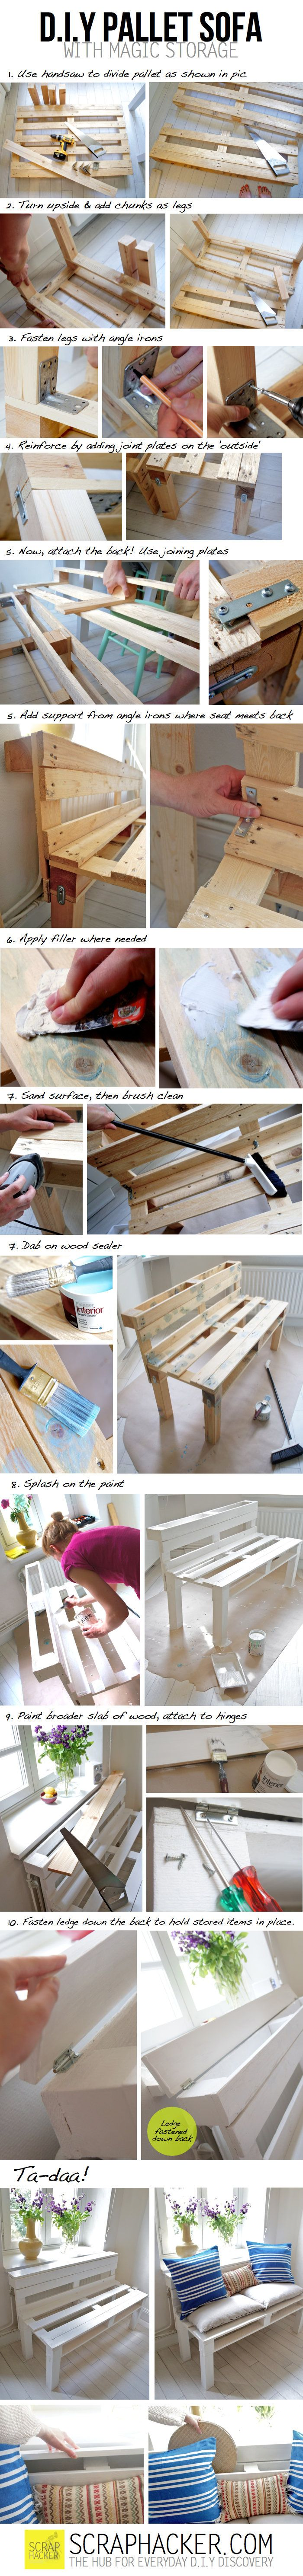 DIY Upcycle Pallet Project: Pallet Sofa. How to build it! To add seating to dinning table for more kiddos